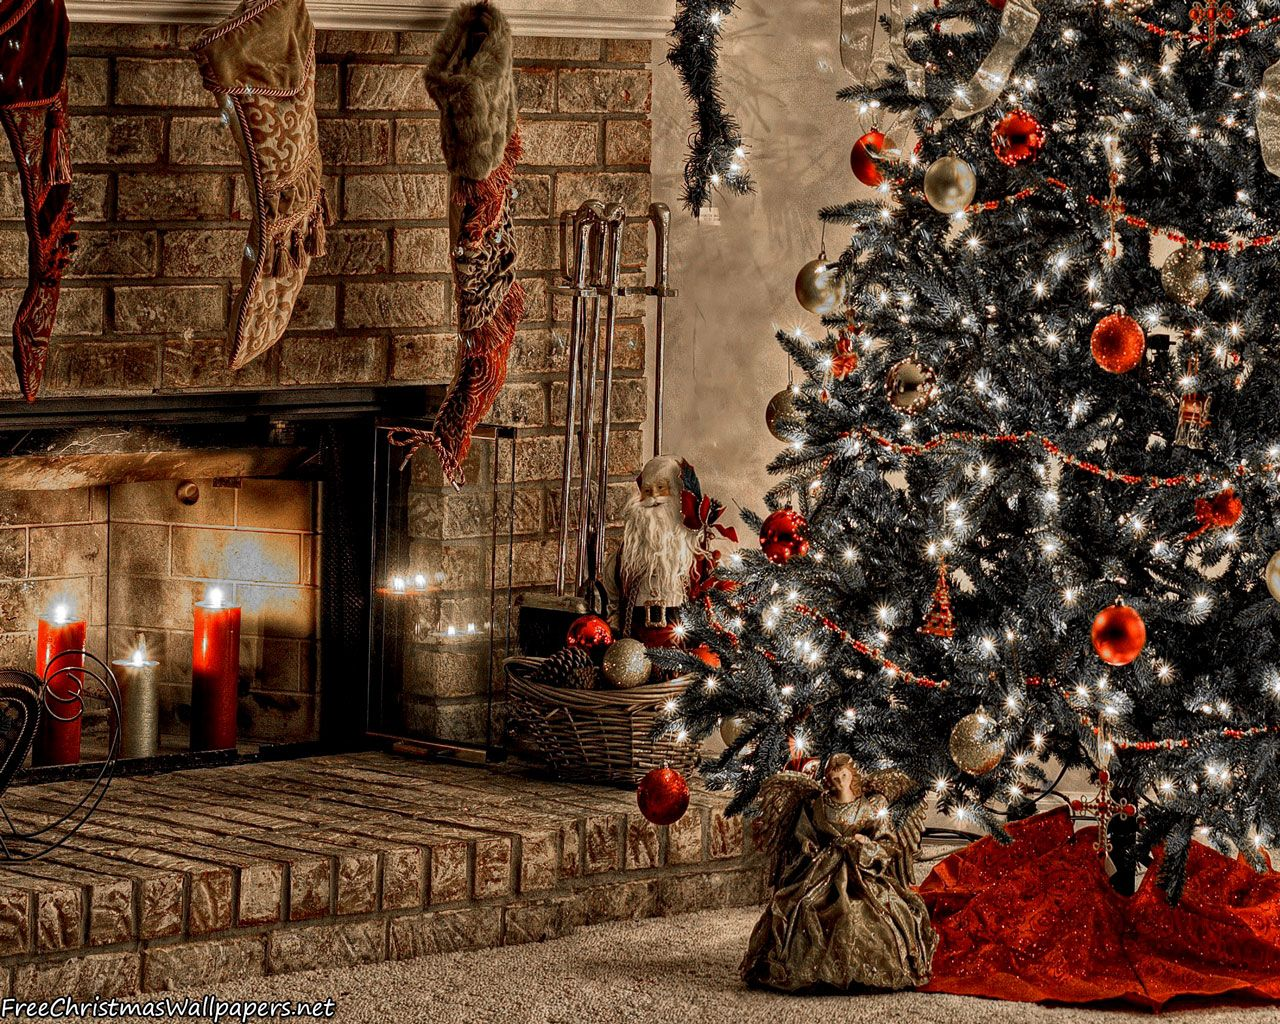 Christmas Fireplace Wallpaper Warm Christmas Fireplace Good Evening Everyone Christmas